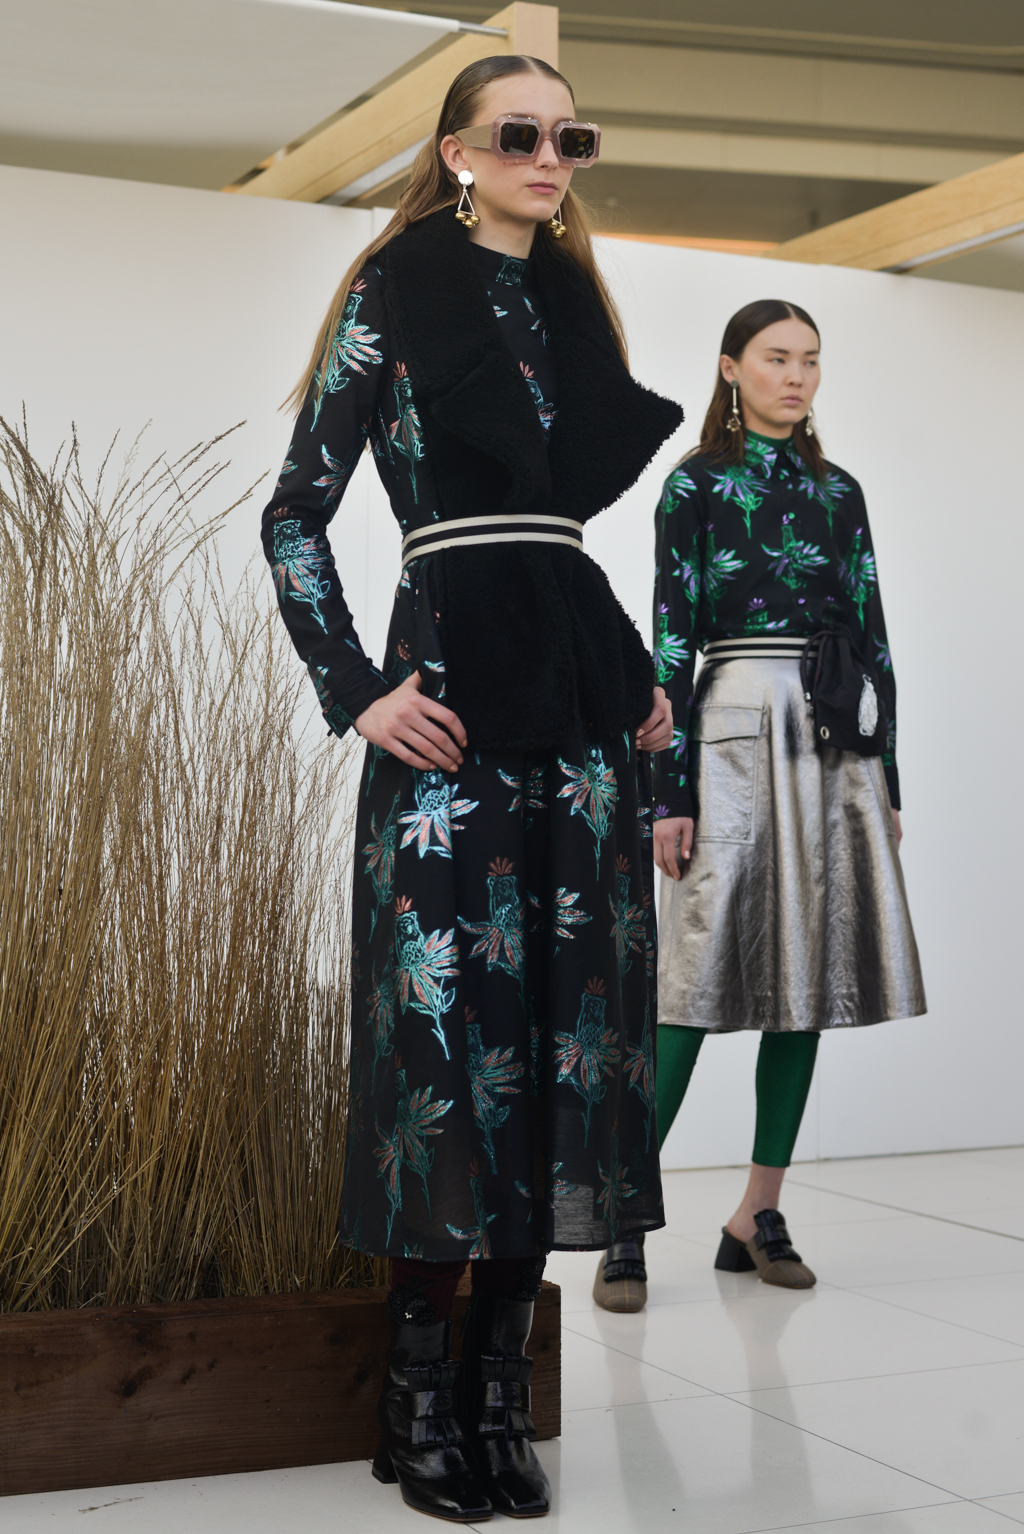 LFW AW17 - Markus Lupfer - Krish Nagari - The Upcoming-6